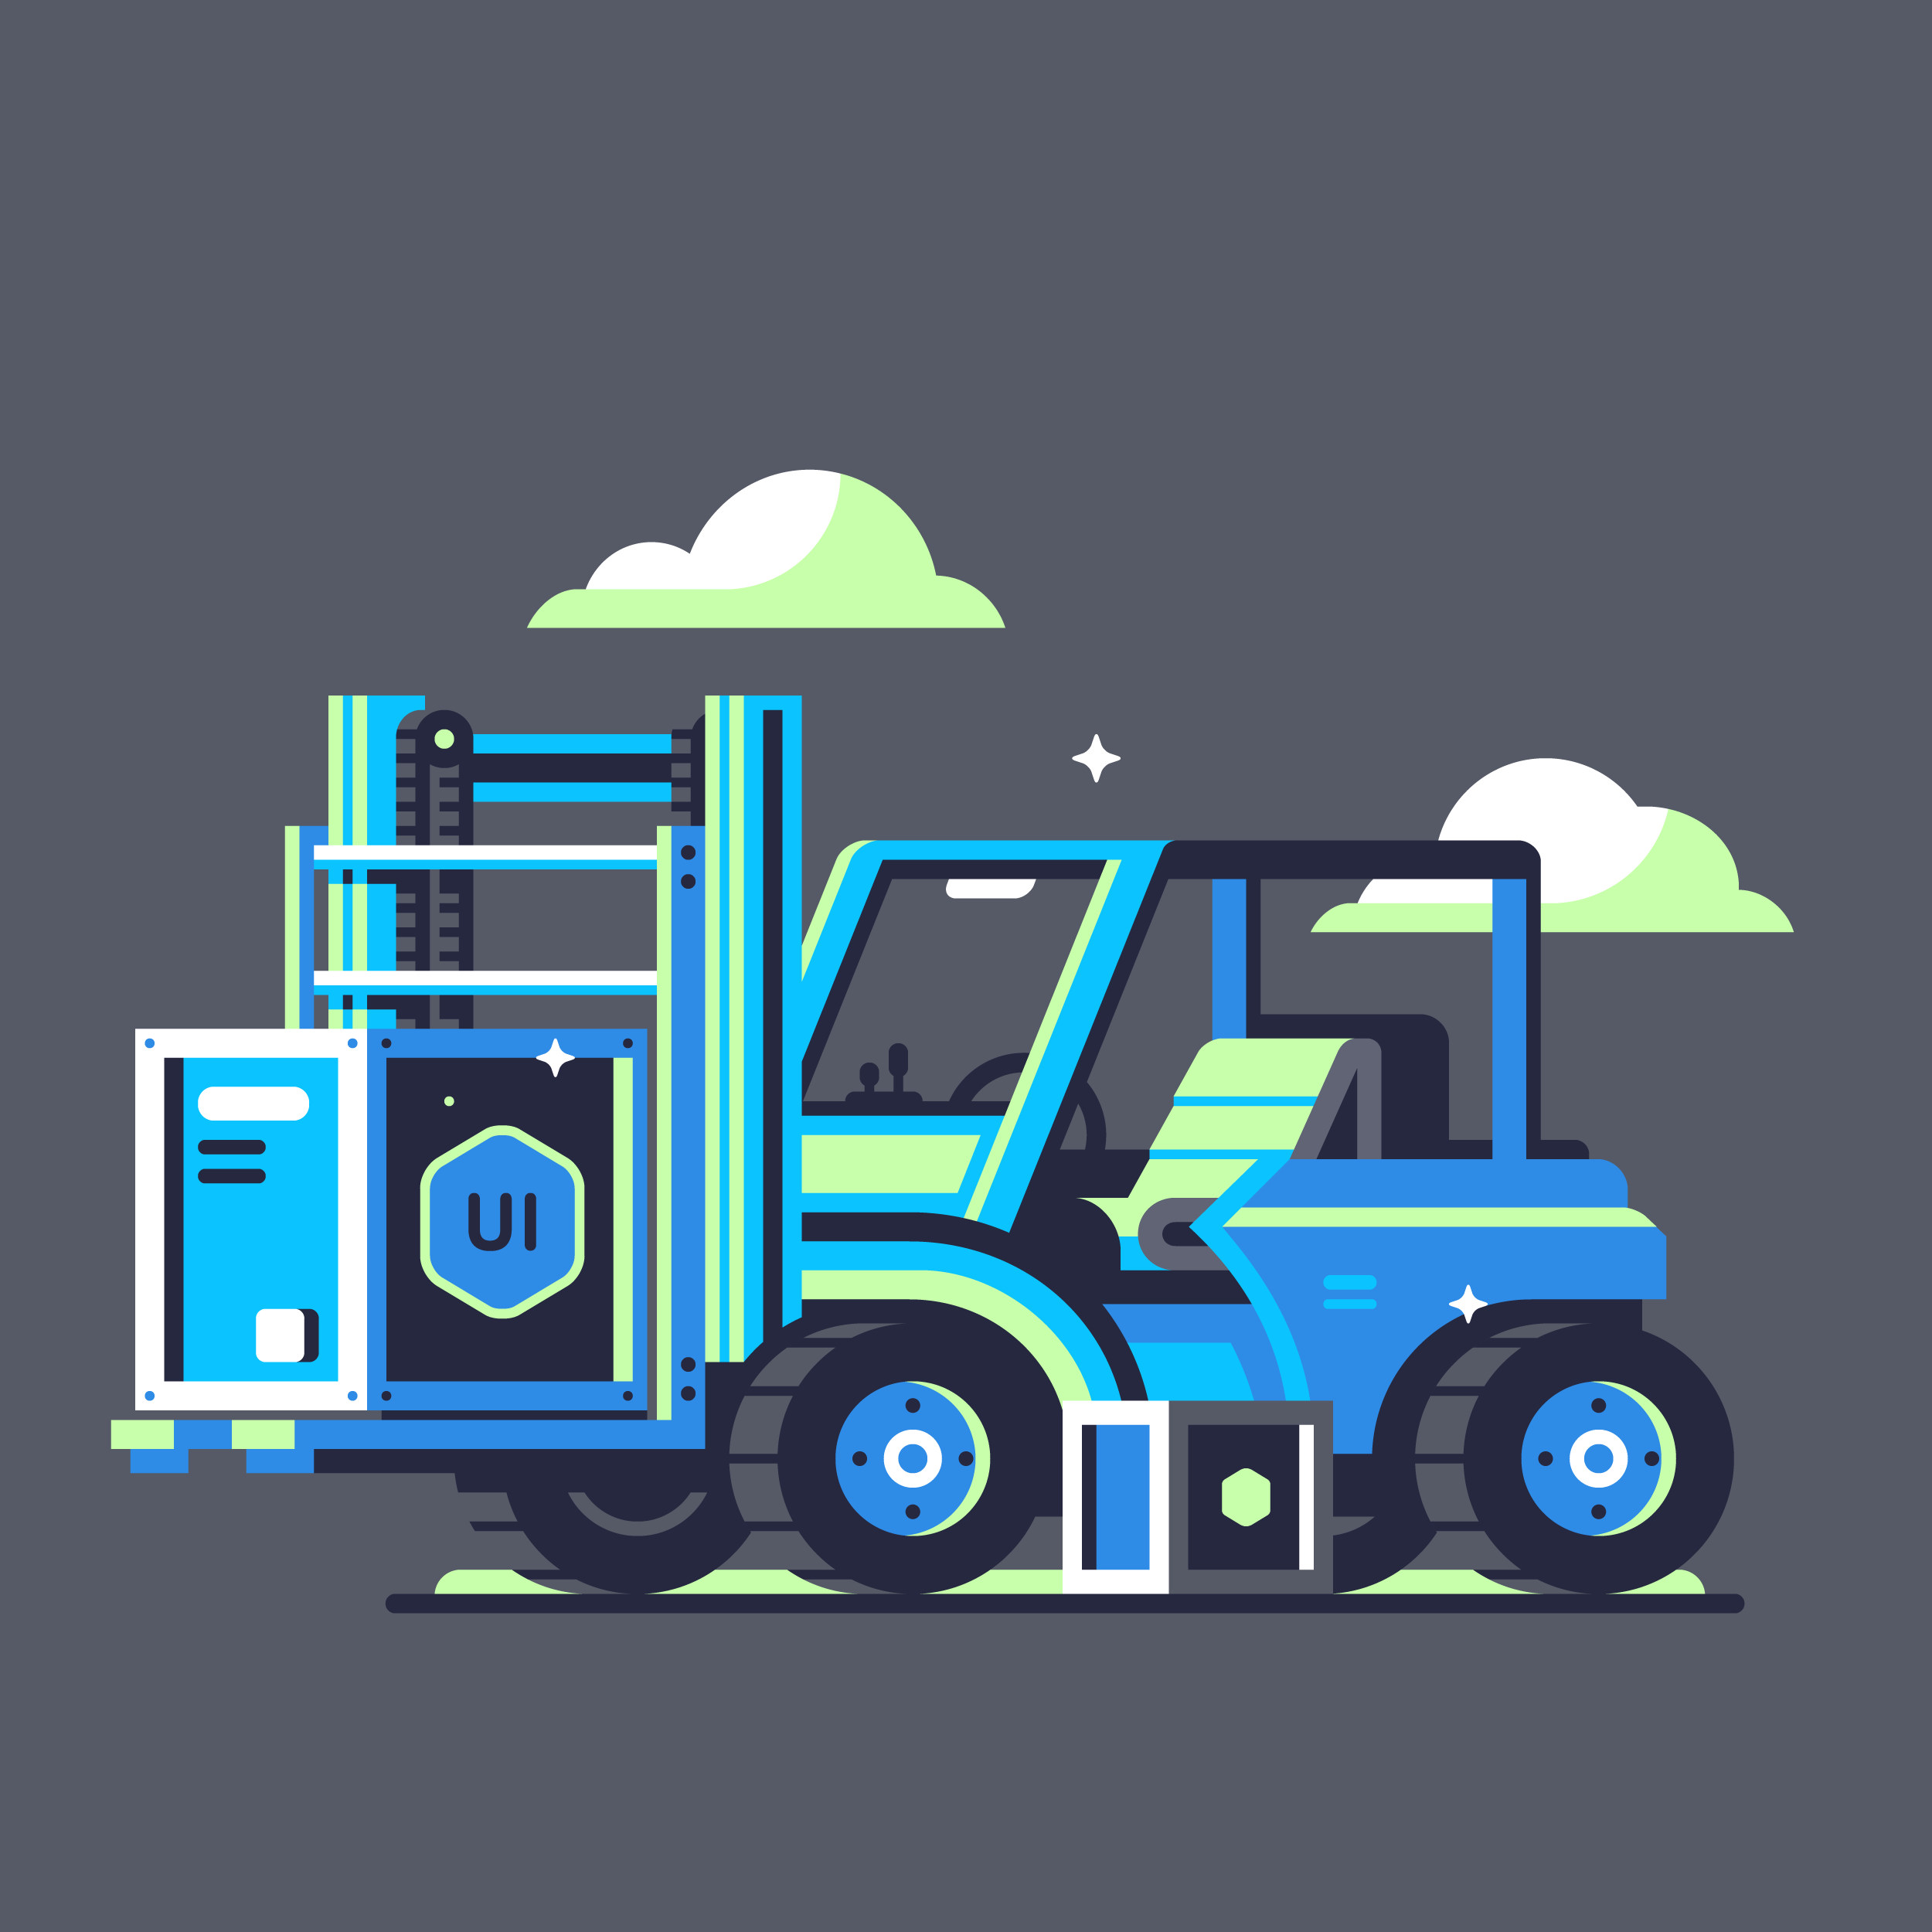 Ui8 forklift Illustration designed by Matt Anderson.